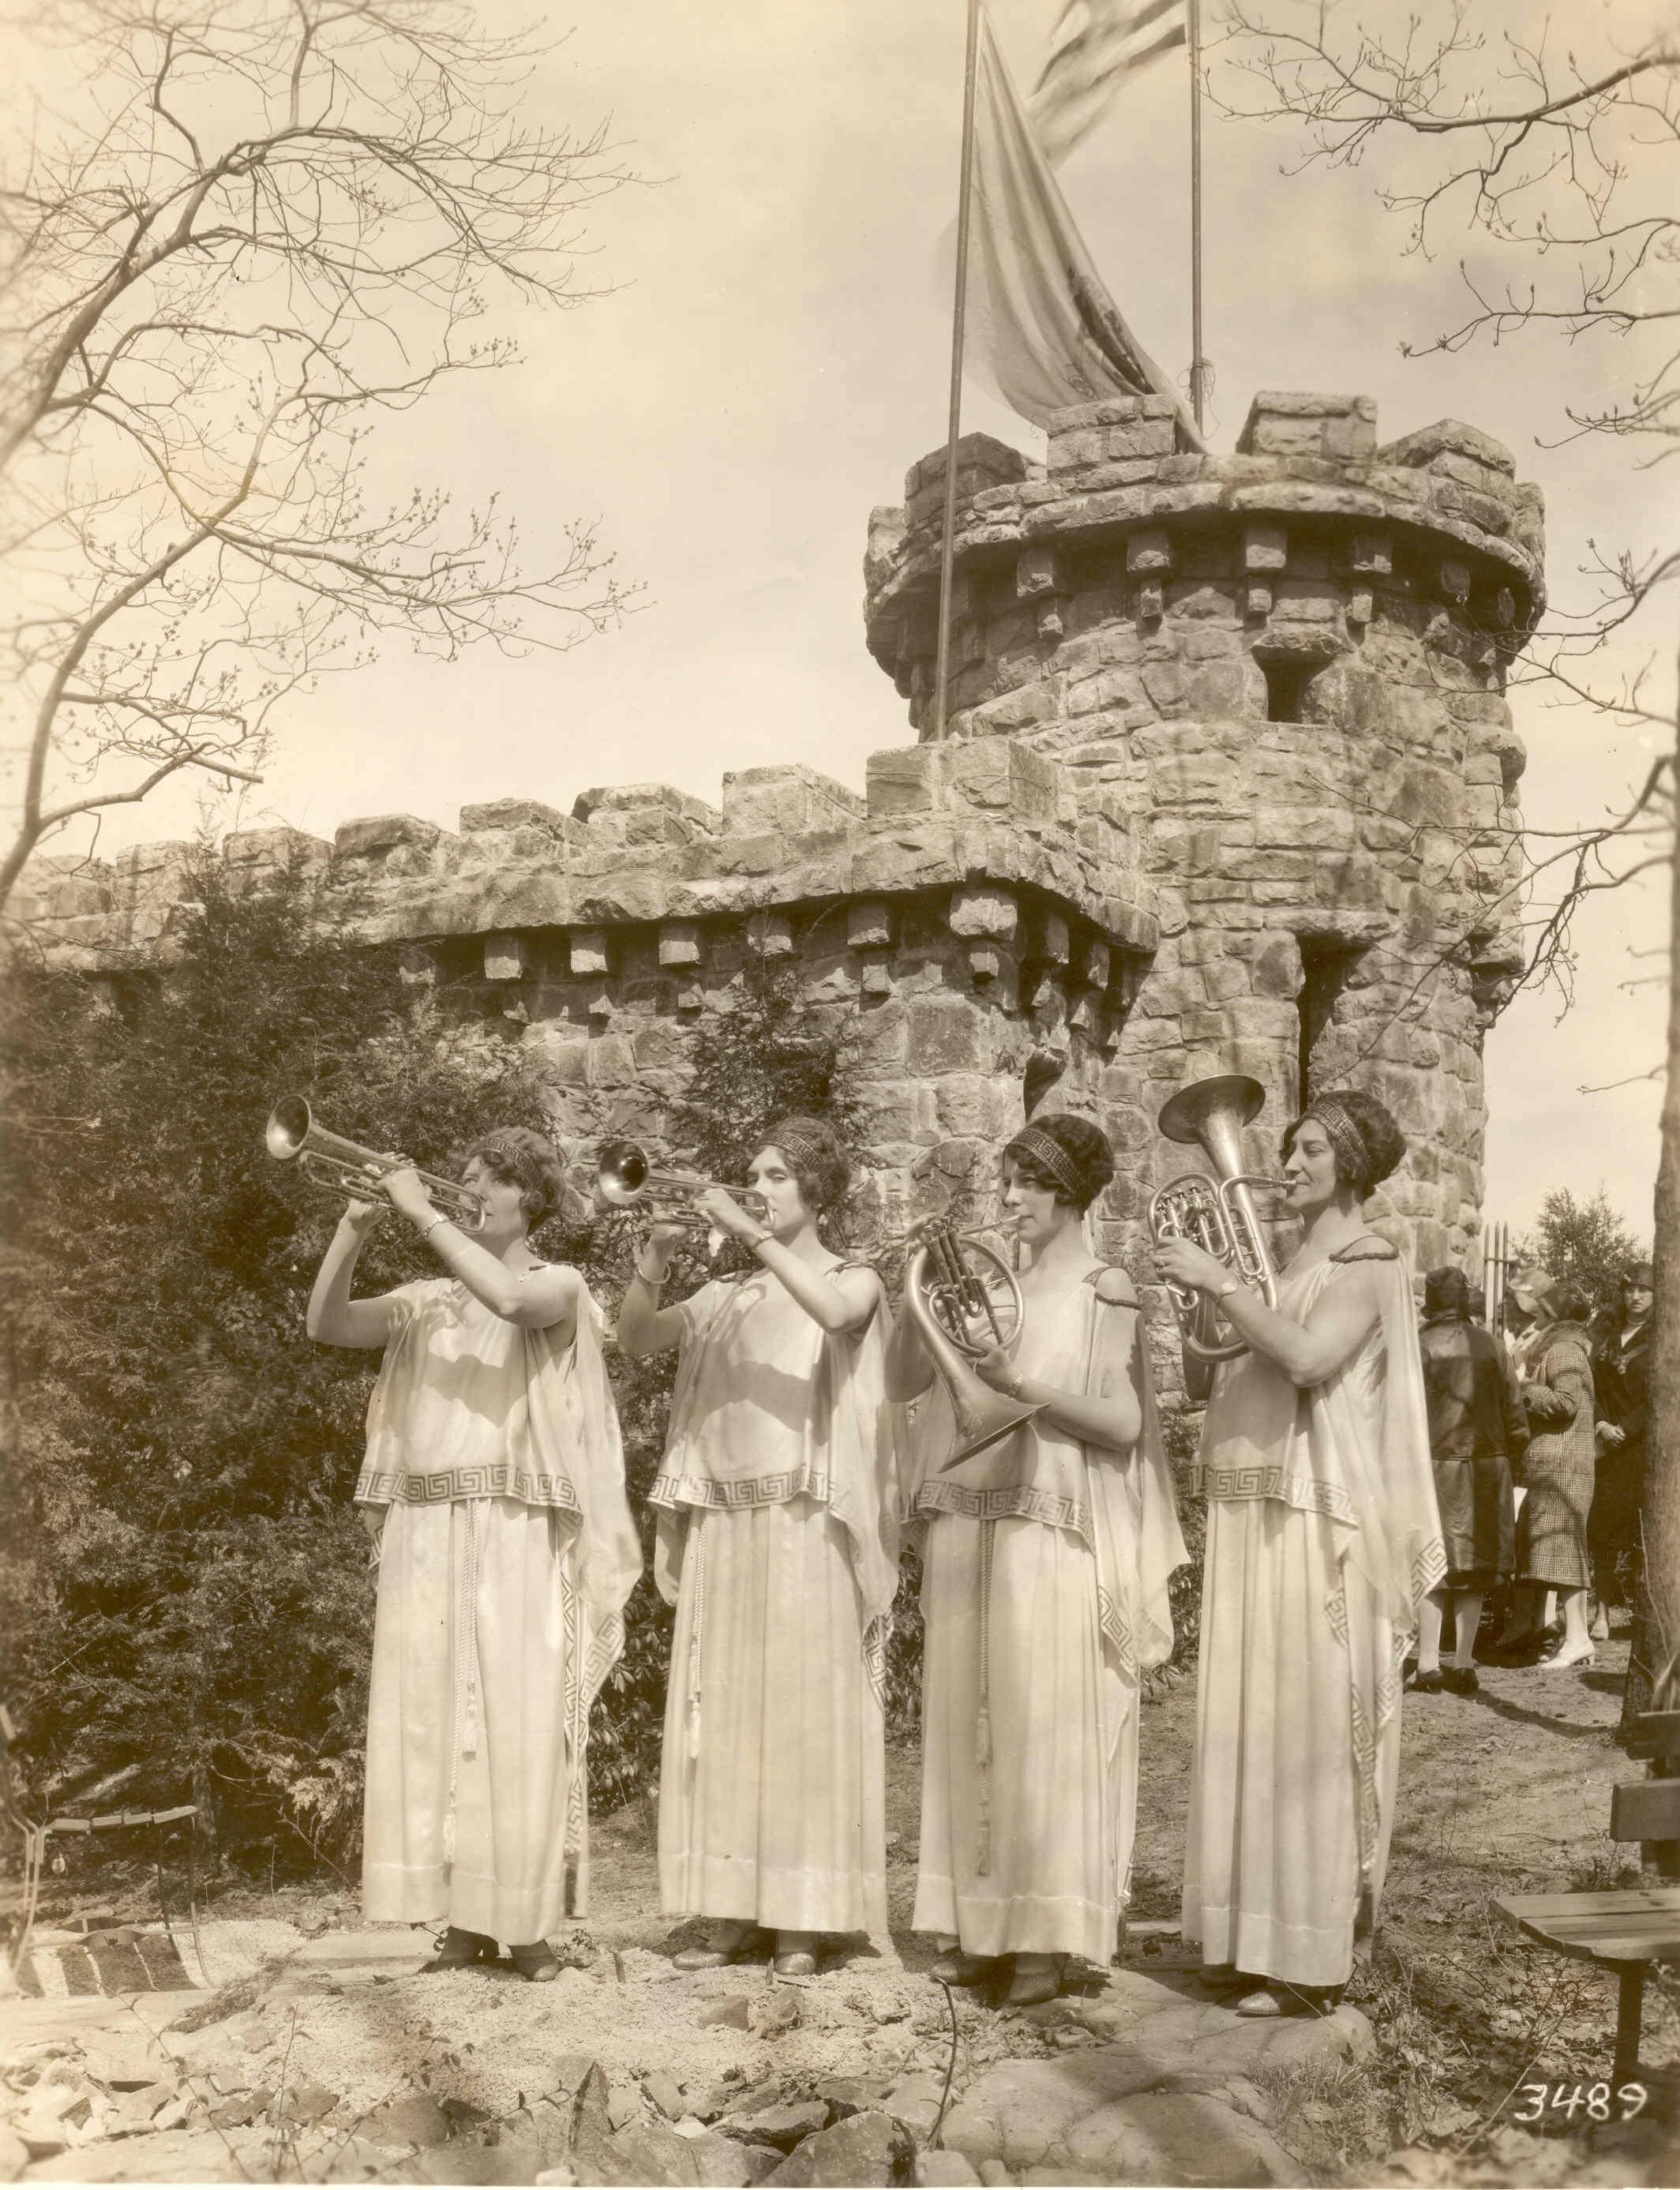 "1895-1896 - The first Palisades study commission was established.Englewood Women's Club was formed as a new chapter of the NJ Federation of the Women's Clubs. Elizabeth Vermilye, Adaline Sterling and Mrs. Chester Loomis on ""inquiry concerning questions of public significance"" and sharply focusing on the Palisades."